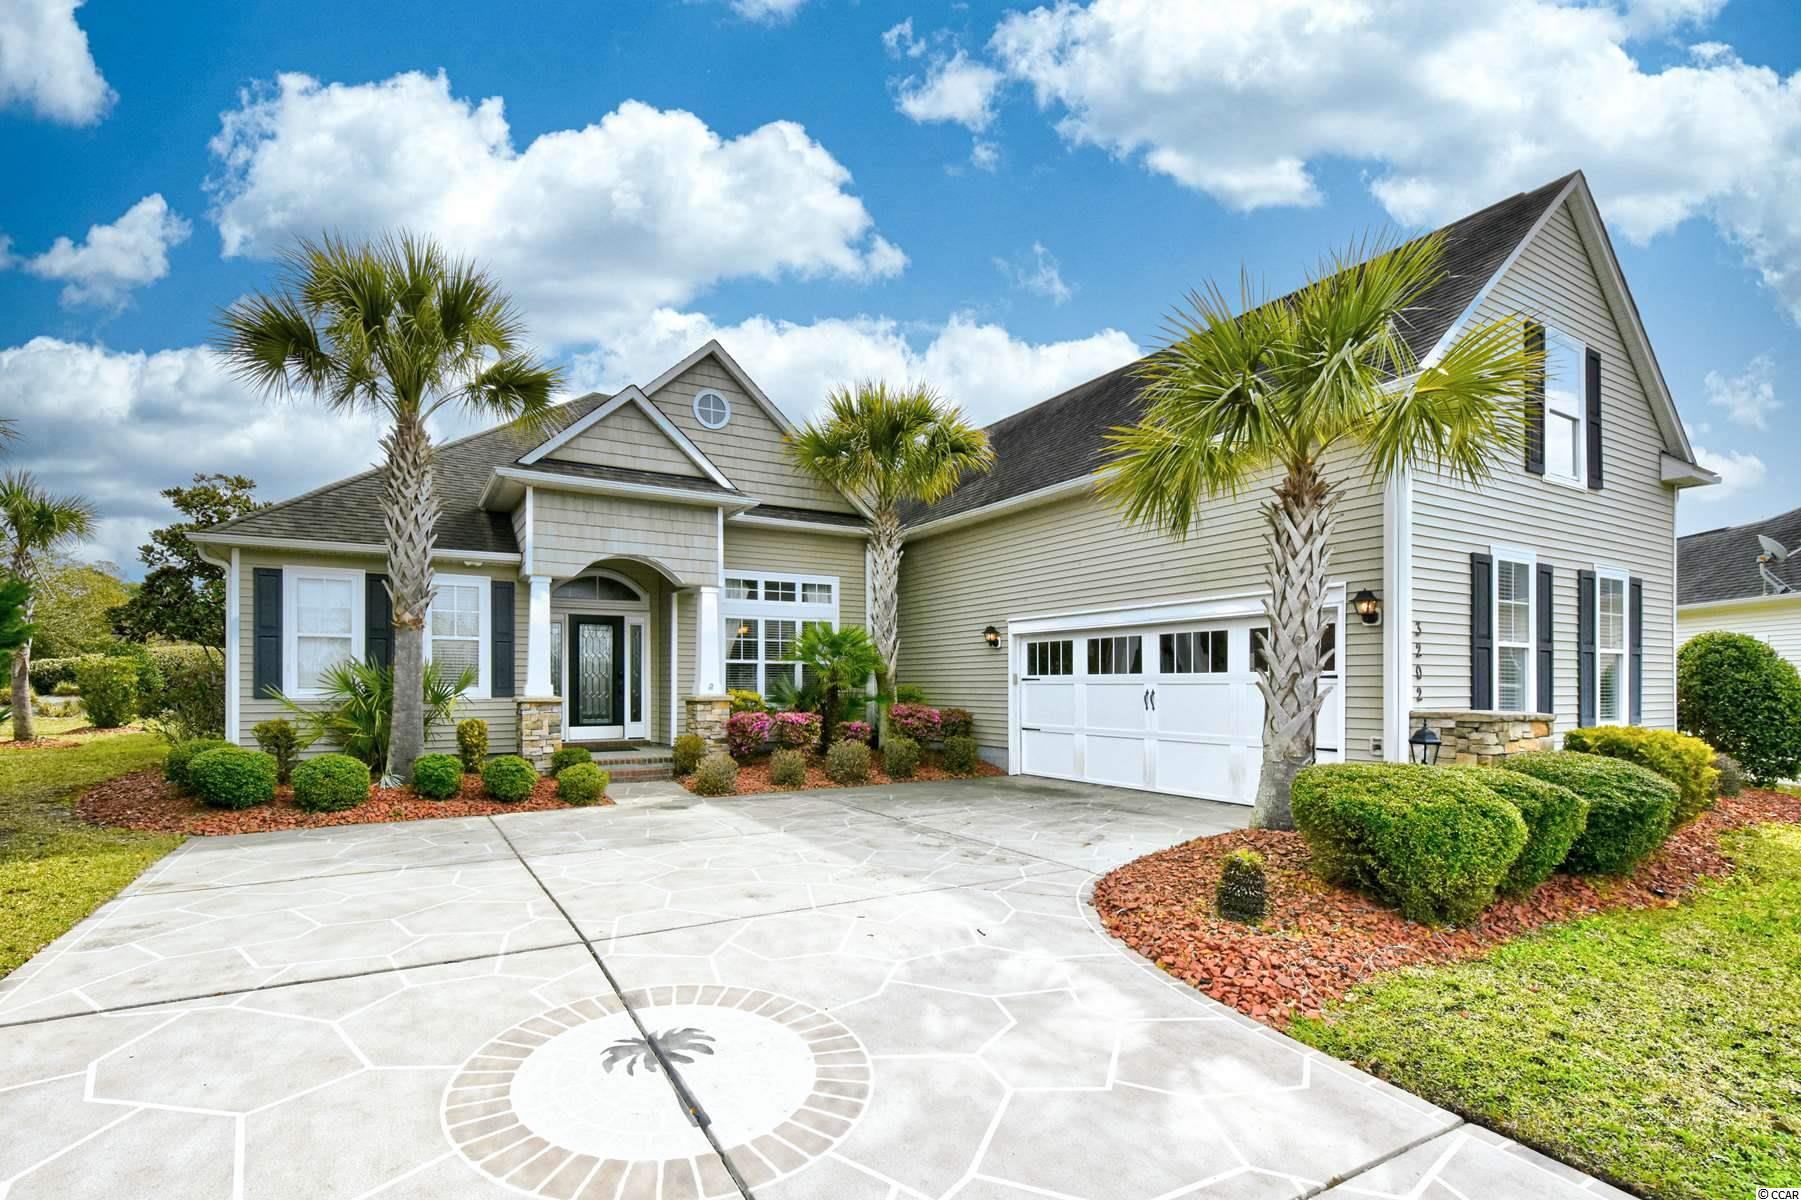 You will love this beautiful home located in Long Bridge in prestigious Barefoot Resort. As you approach the home you will notice the difference from the exterior finishes to the extensive landscaping. The foyer, formal dining room and family room have beautiful Brazilian cherry hardwood flooring. The family room is open from the kitchen with tall ceilings and fireplace. The large kitchen has 42' maple cabinets, granite counter tops, tile flooring and stainless steel Kitchen Aid appliances .The master bedroom is huge with tray ceilings and the master bath raised vanities with double sinks, tiled shower, and whirlpool tub. The fourth bedroom has it's very own bathroom. Off the back of the home is a large screened porch with tiled flooring, stoned courtyard patio with fireplace where you can barbecue and enjoy your favorite beverage after a day at the beach, or golfing. The HOA dues covers membership in the Barefoot Residence Club with fitness center, Olympic swimming pool, Clubhouse, tennis, and basketball courts. The HOA dues also covers membership in the Barefoot Beach cabana with shuttle service, private access and gated parking for the property owners. There is a marina with jet ski and boat rentals.